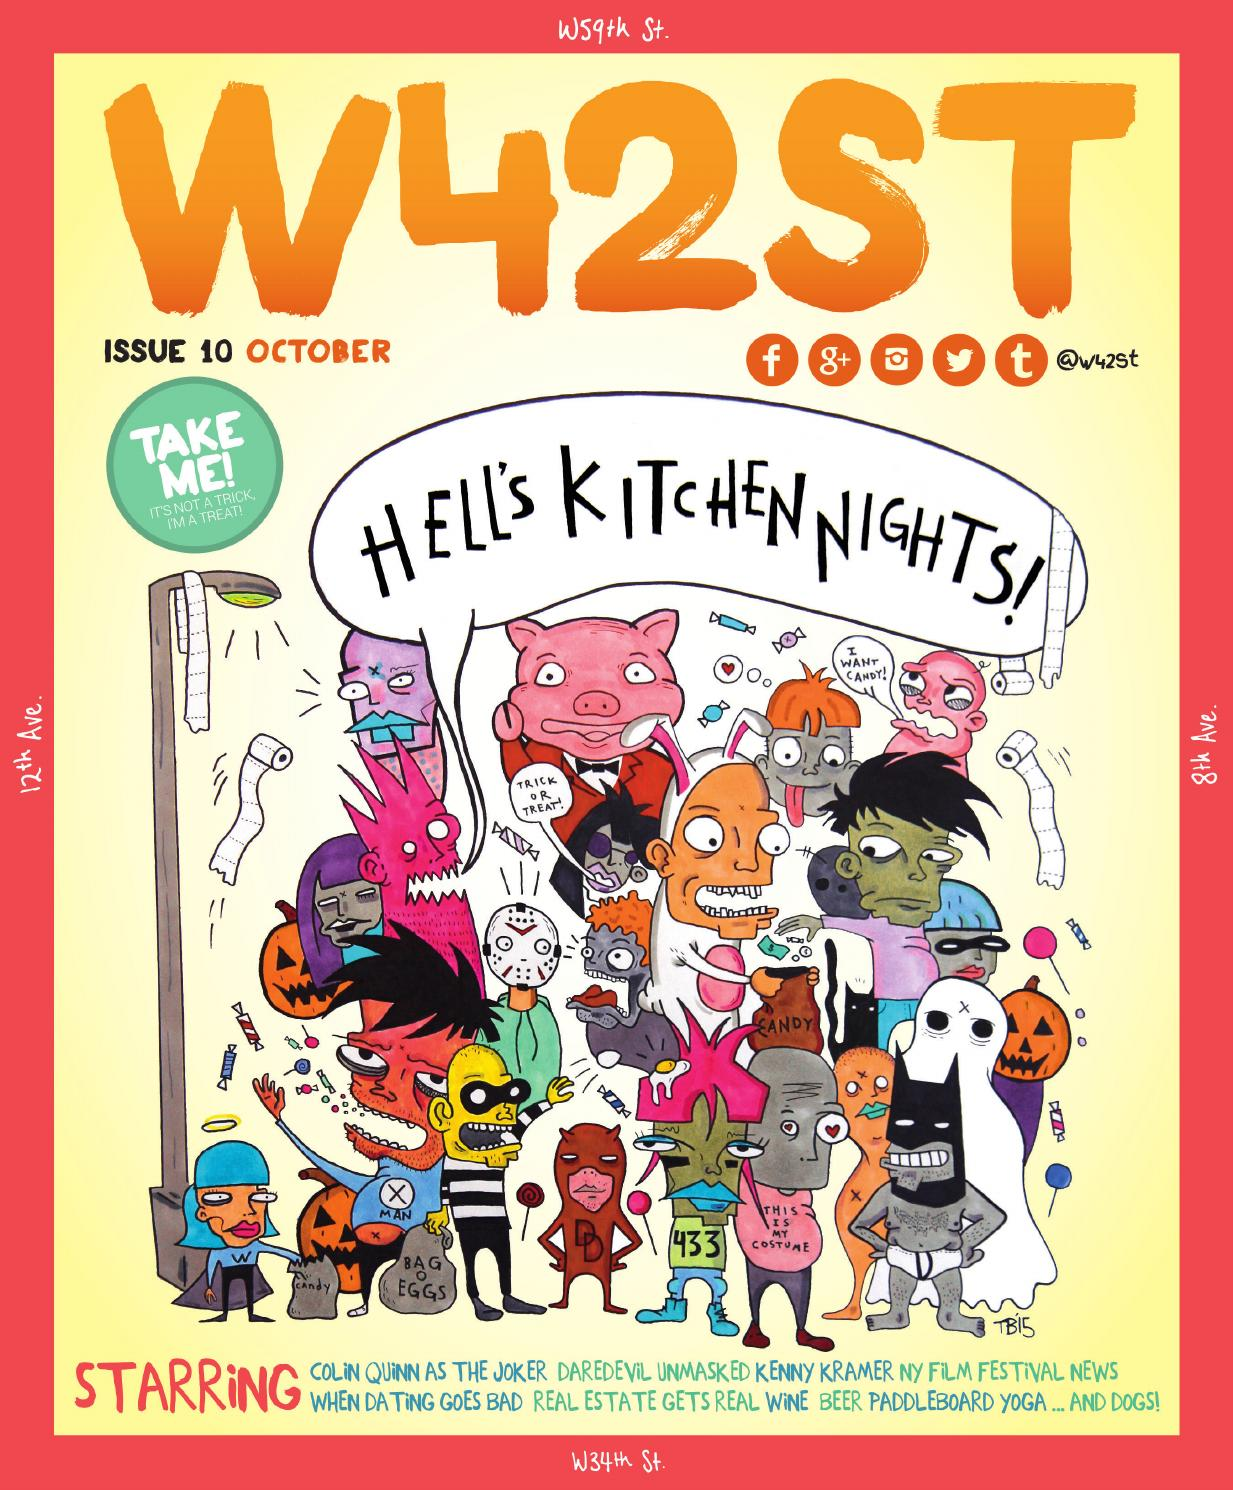 W42st Magazine Issue 10 Hells Kitchen Nights By Barking Mad Speed Shop These Are Great Diagrams Issuu